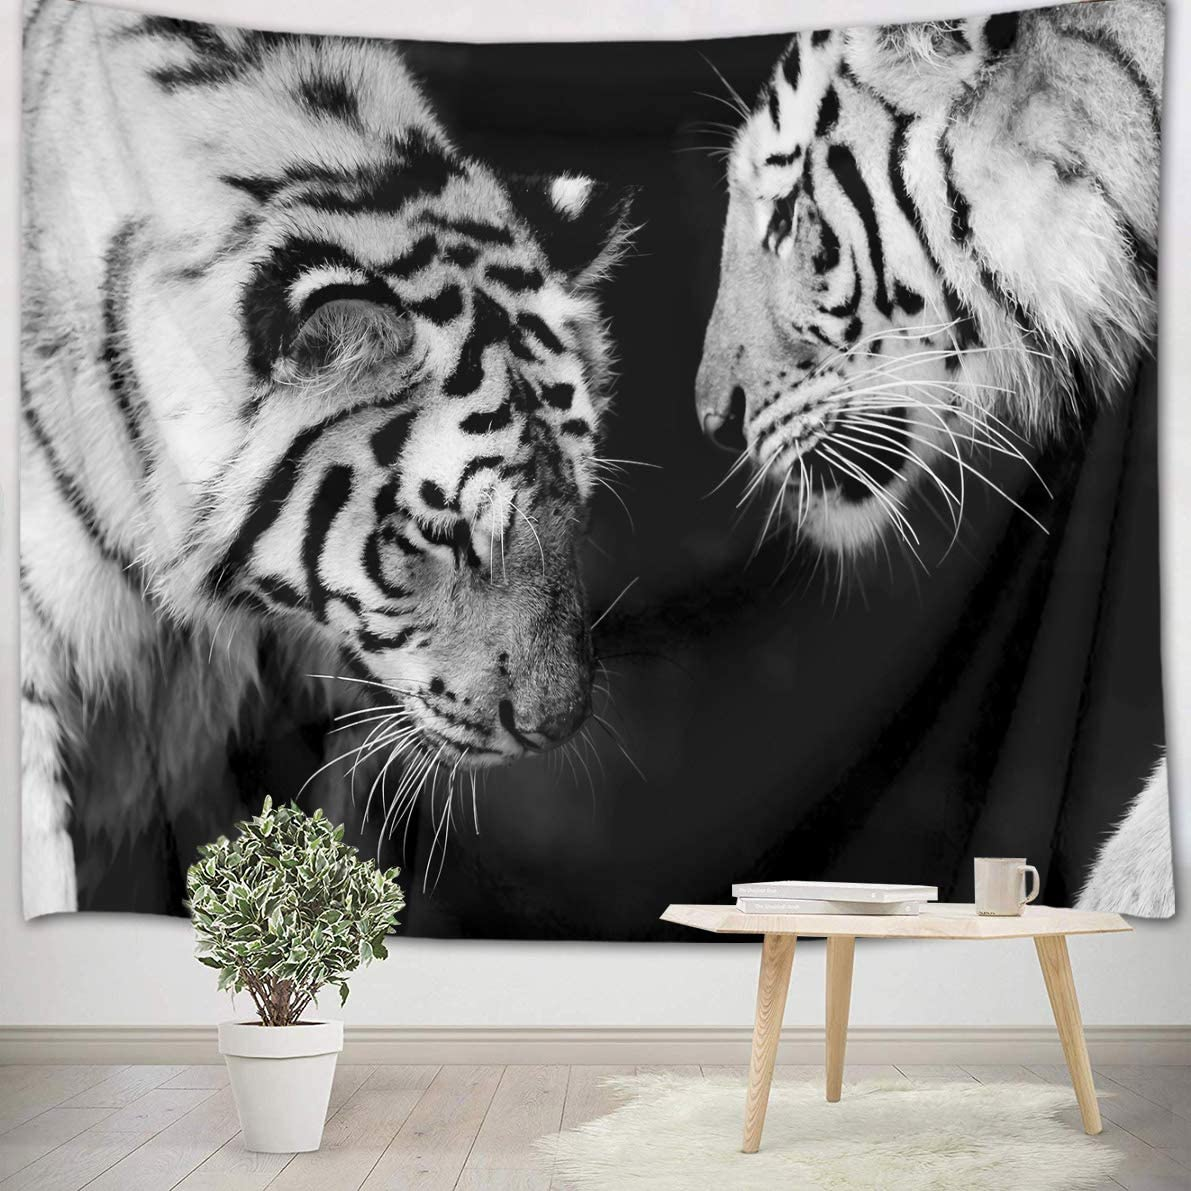 LB White Tiger Tapestry Wall Hanging Love Theme Couple Tigers Colesed Art Print Wild Animal Tapestry for Kids Bedroom Living Dining Room College Dorm Home Decor 93 Wx71 L,Black